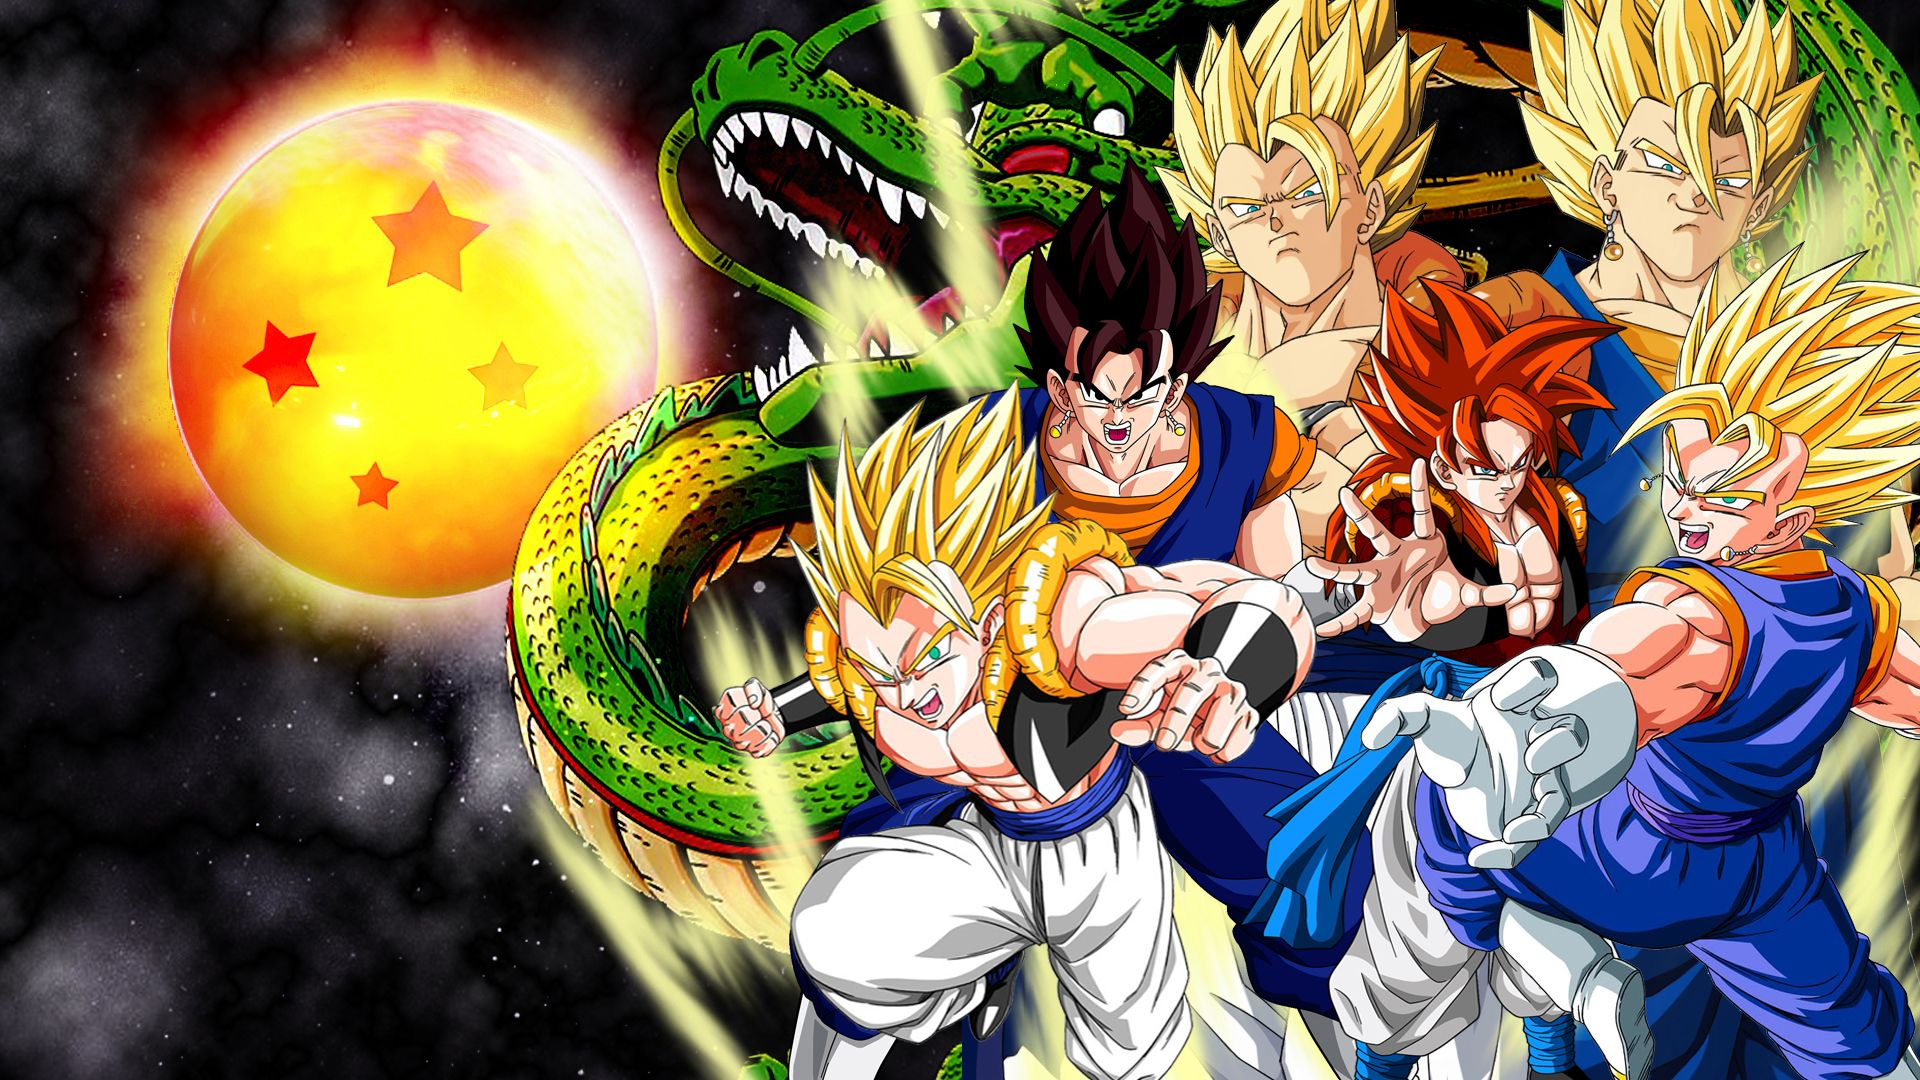 Dragon ball z wallpapers downloads dragon ball z best 3d - 3d wallpaper of dragon ball z ...